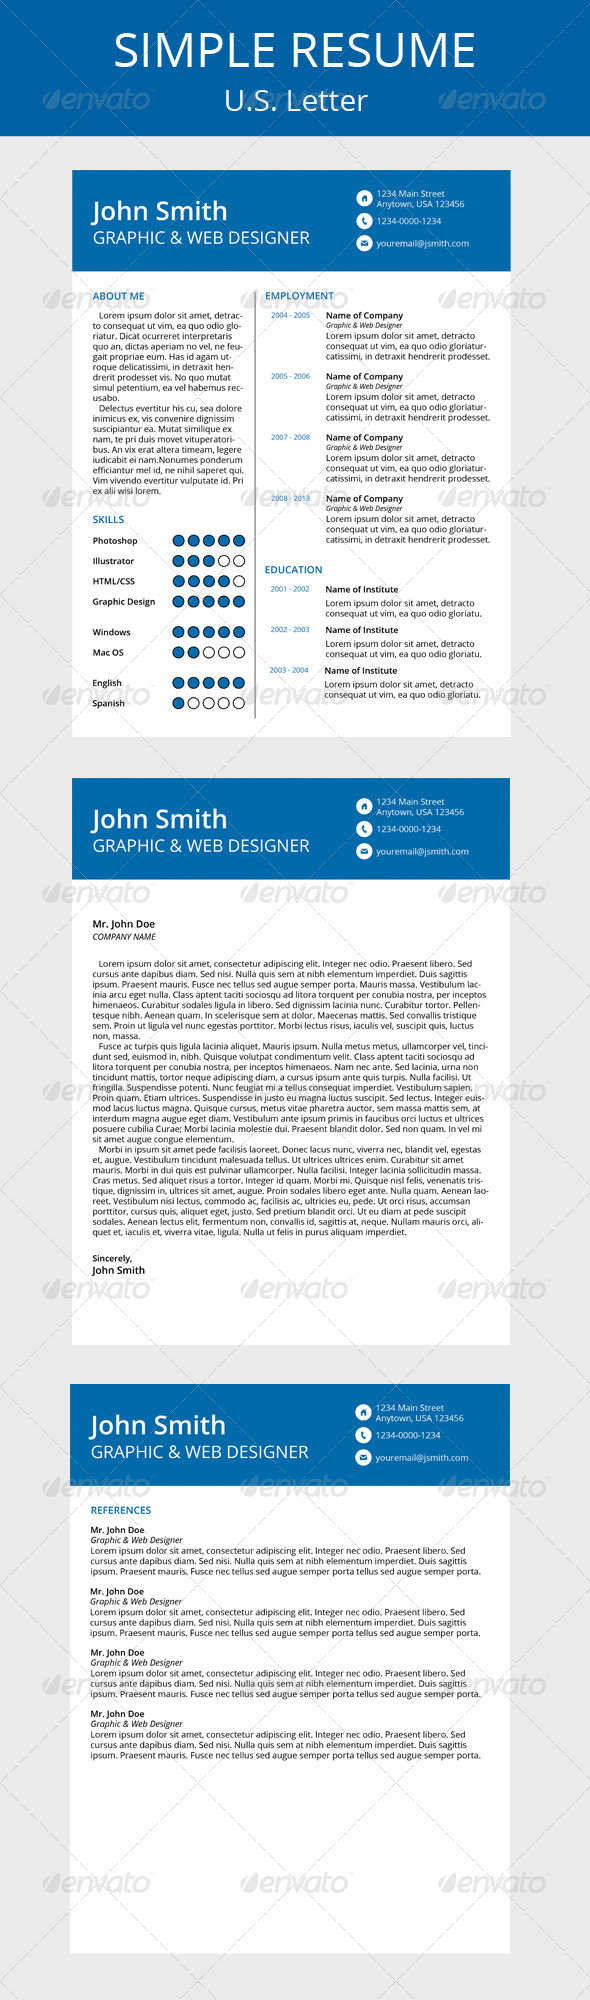 GraphicRiver Simple Resume 5962911